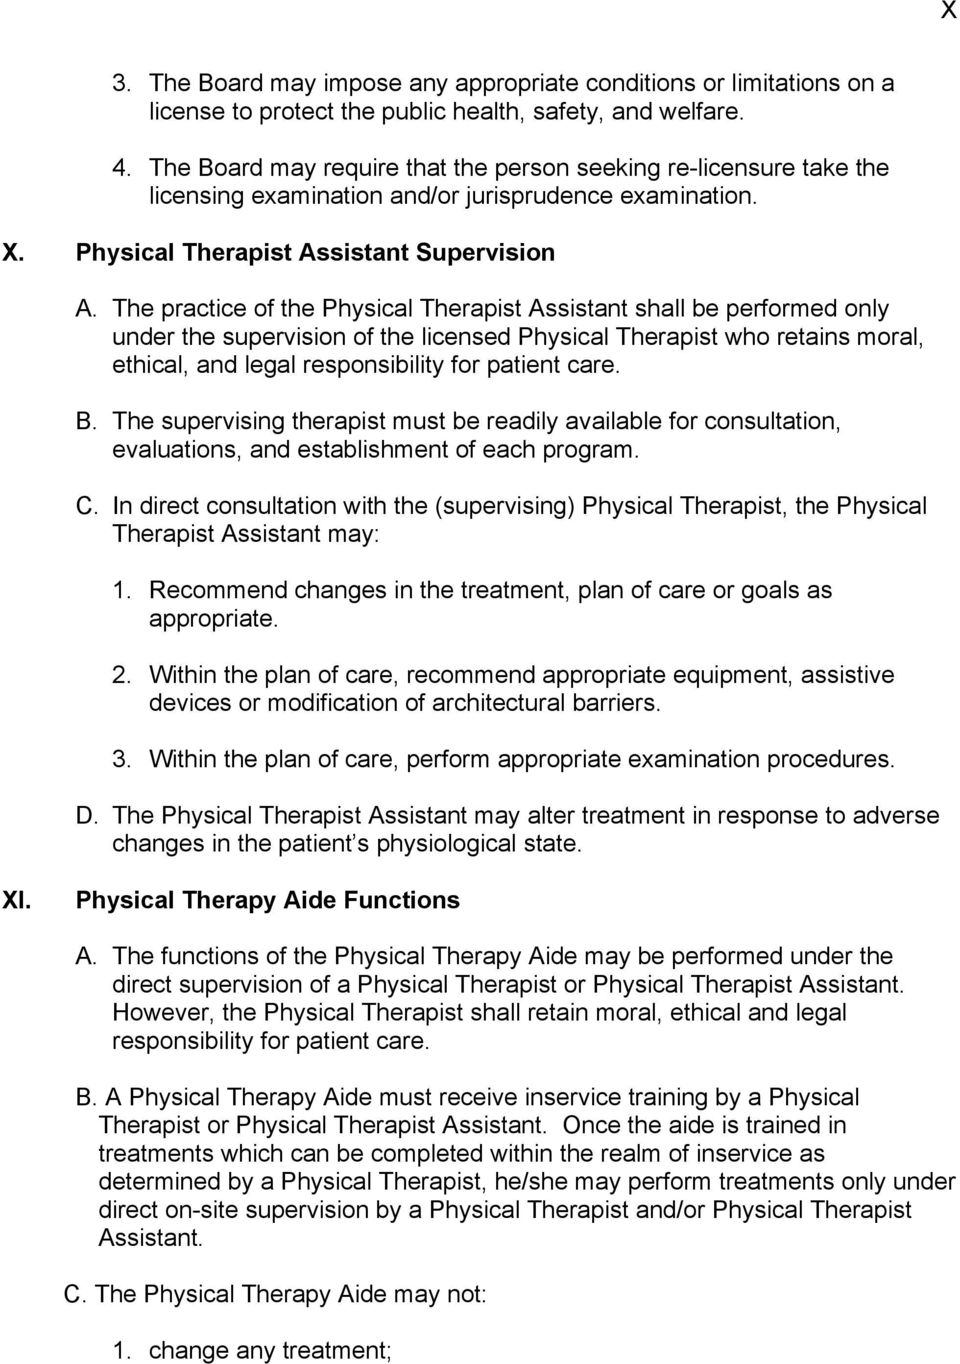 The practice of the Physical Therapist Assistant shall be performed only under the supervision of the licensed Physical Therapist who retains moral, ethical, and legal responsibility for patient care.